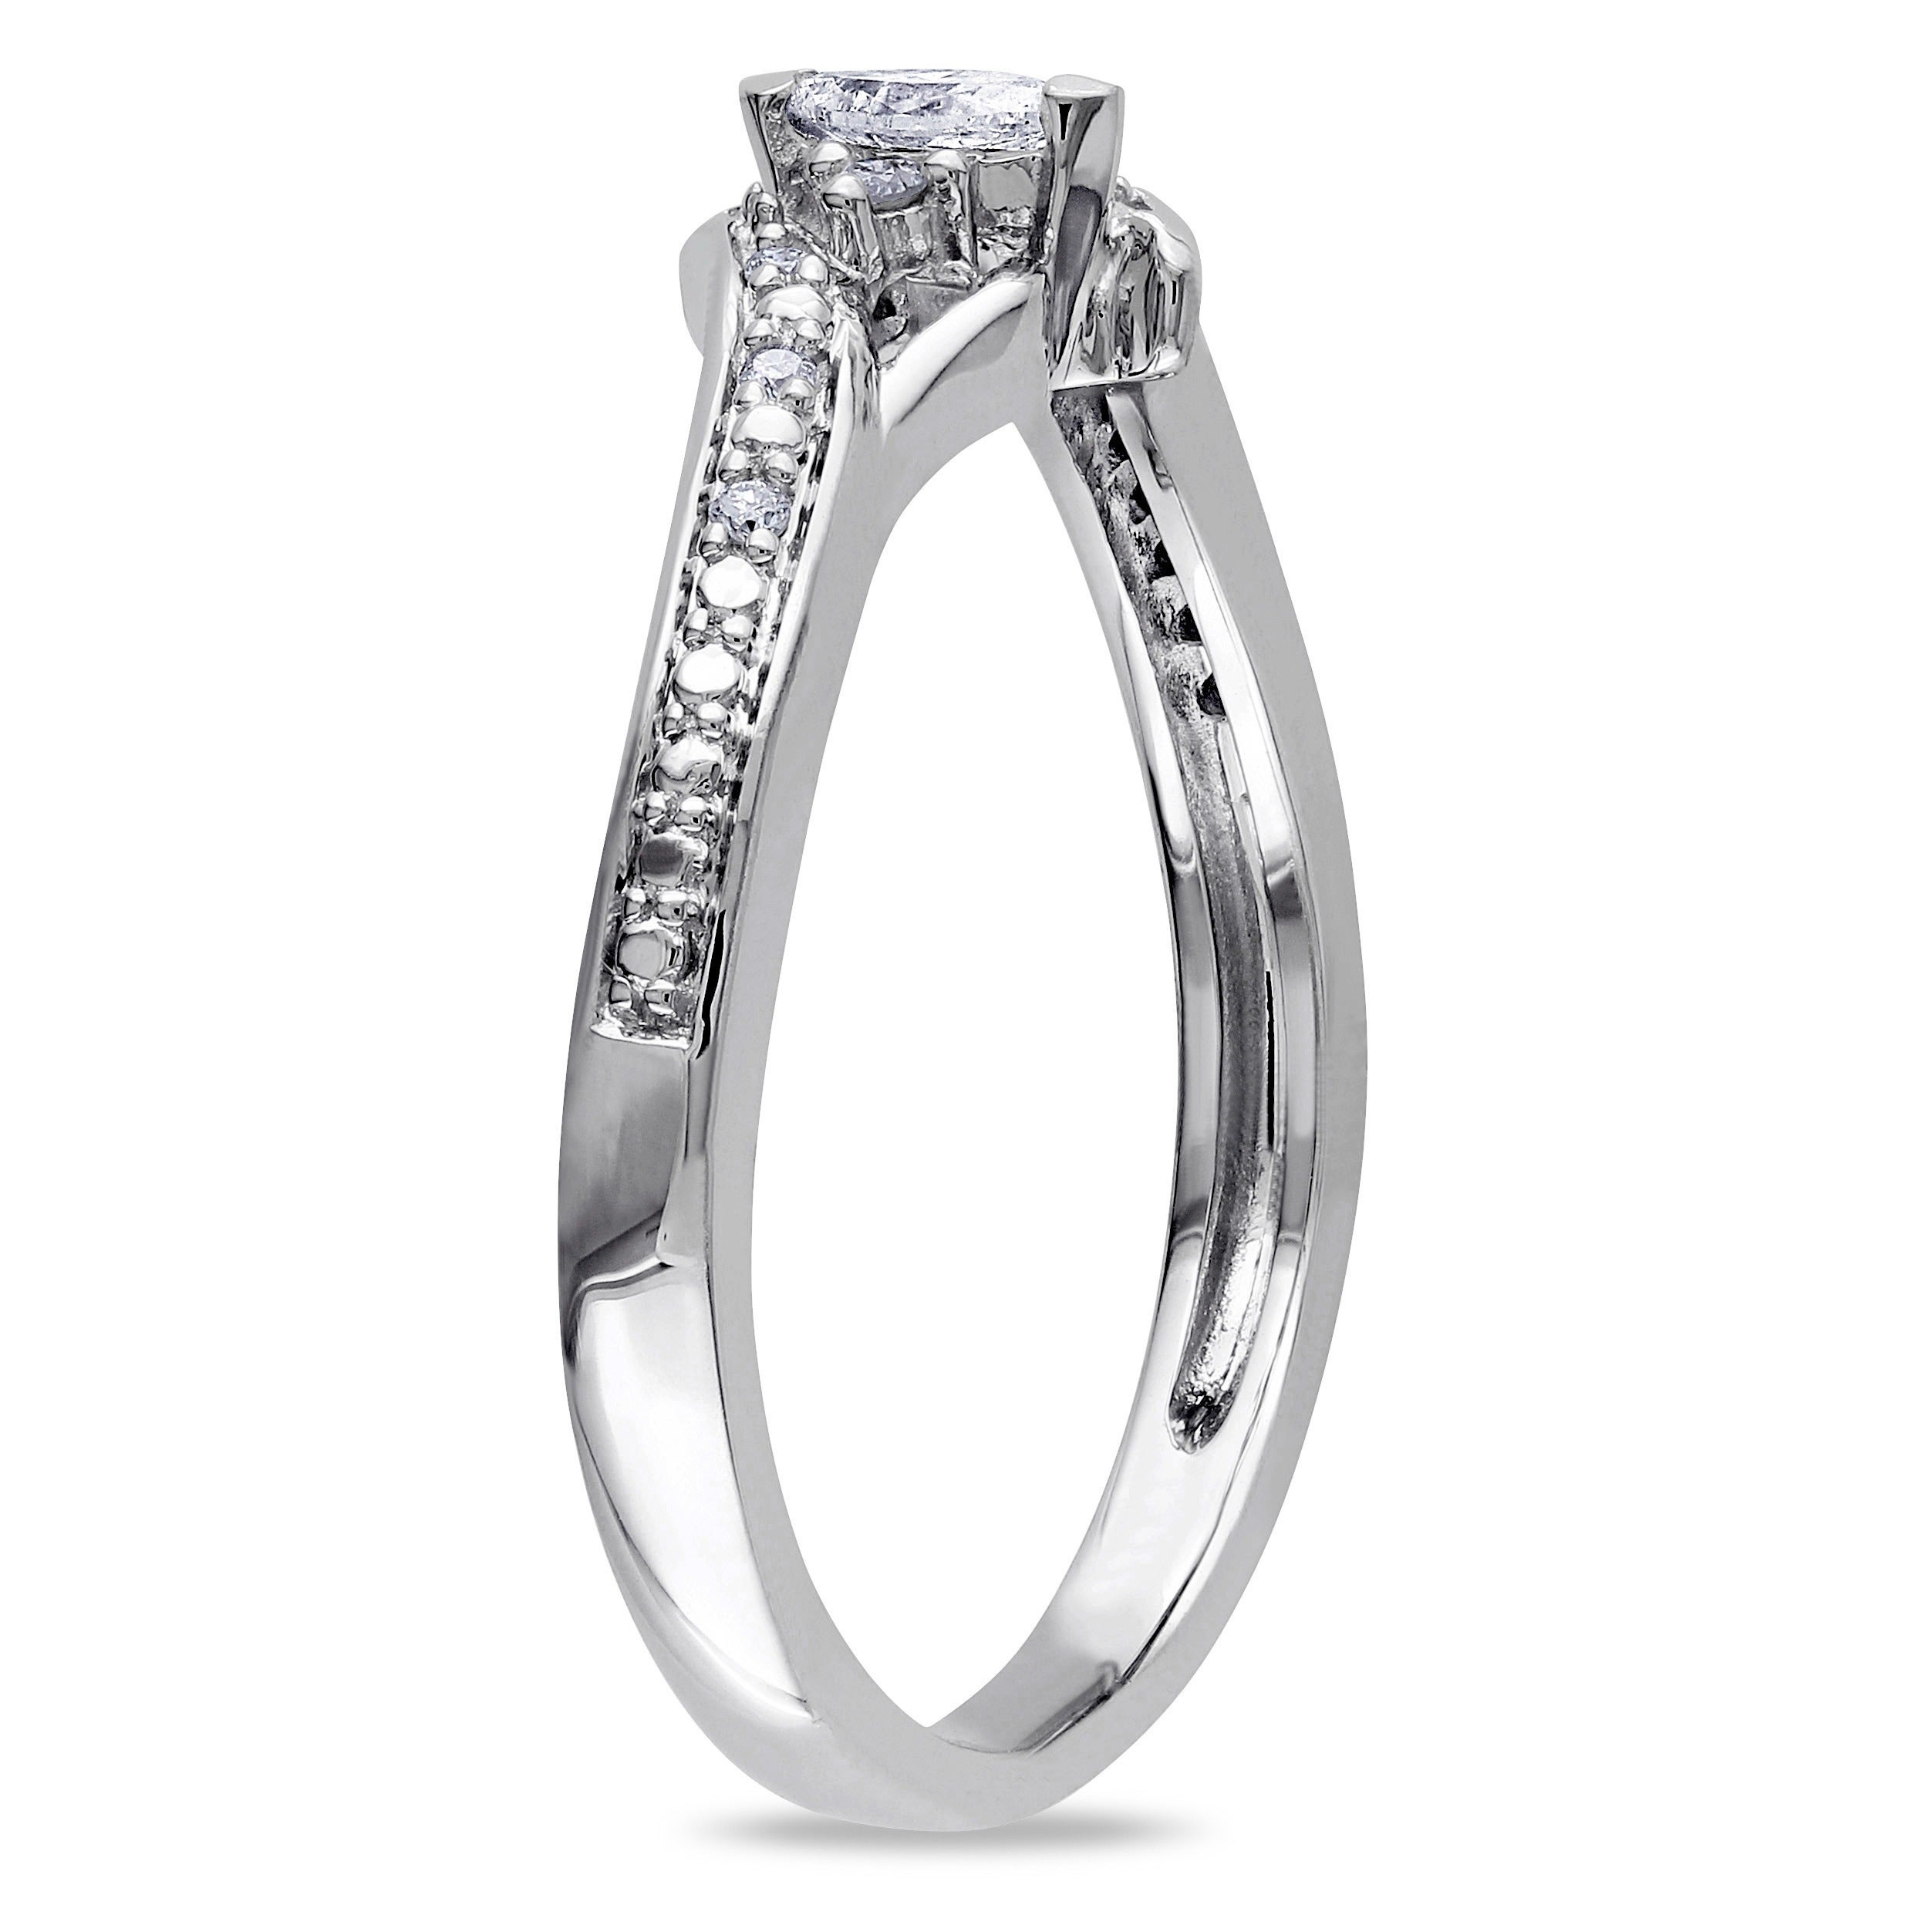 1 Carat G-h Diamond Anniversary Solitaire Bridal Ring Band Set 14k White Gold To Win Warm Praise From Customers Bridal & Wedding Party Jewelry